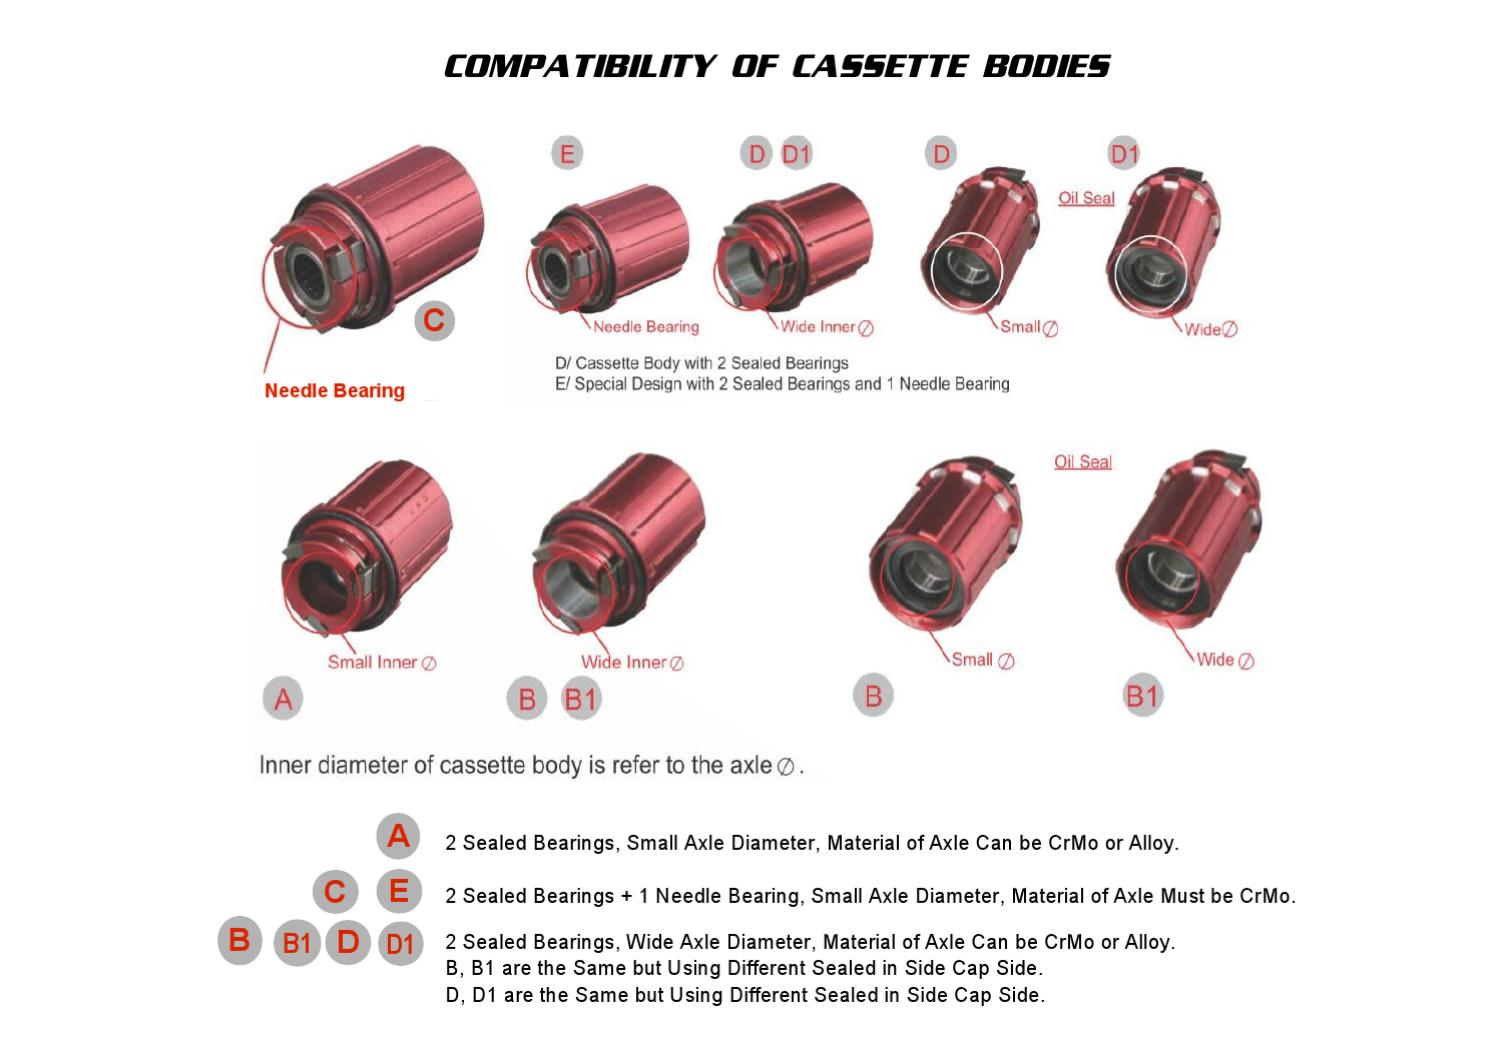 Novatec Compatibility of Cassette Bodies by NOVATEC - issuu